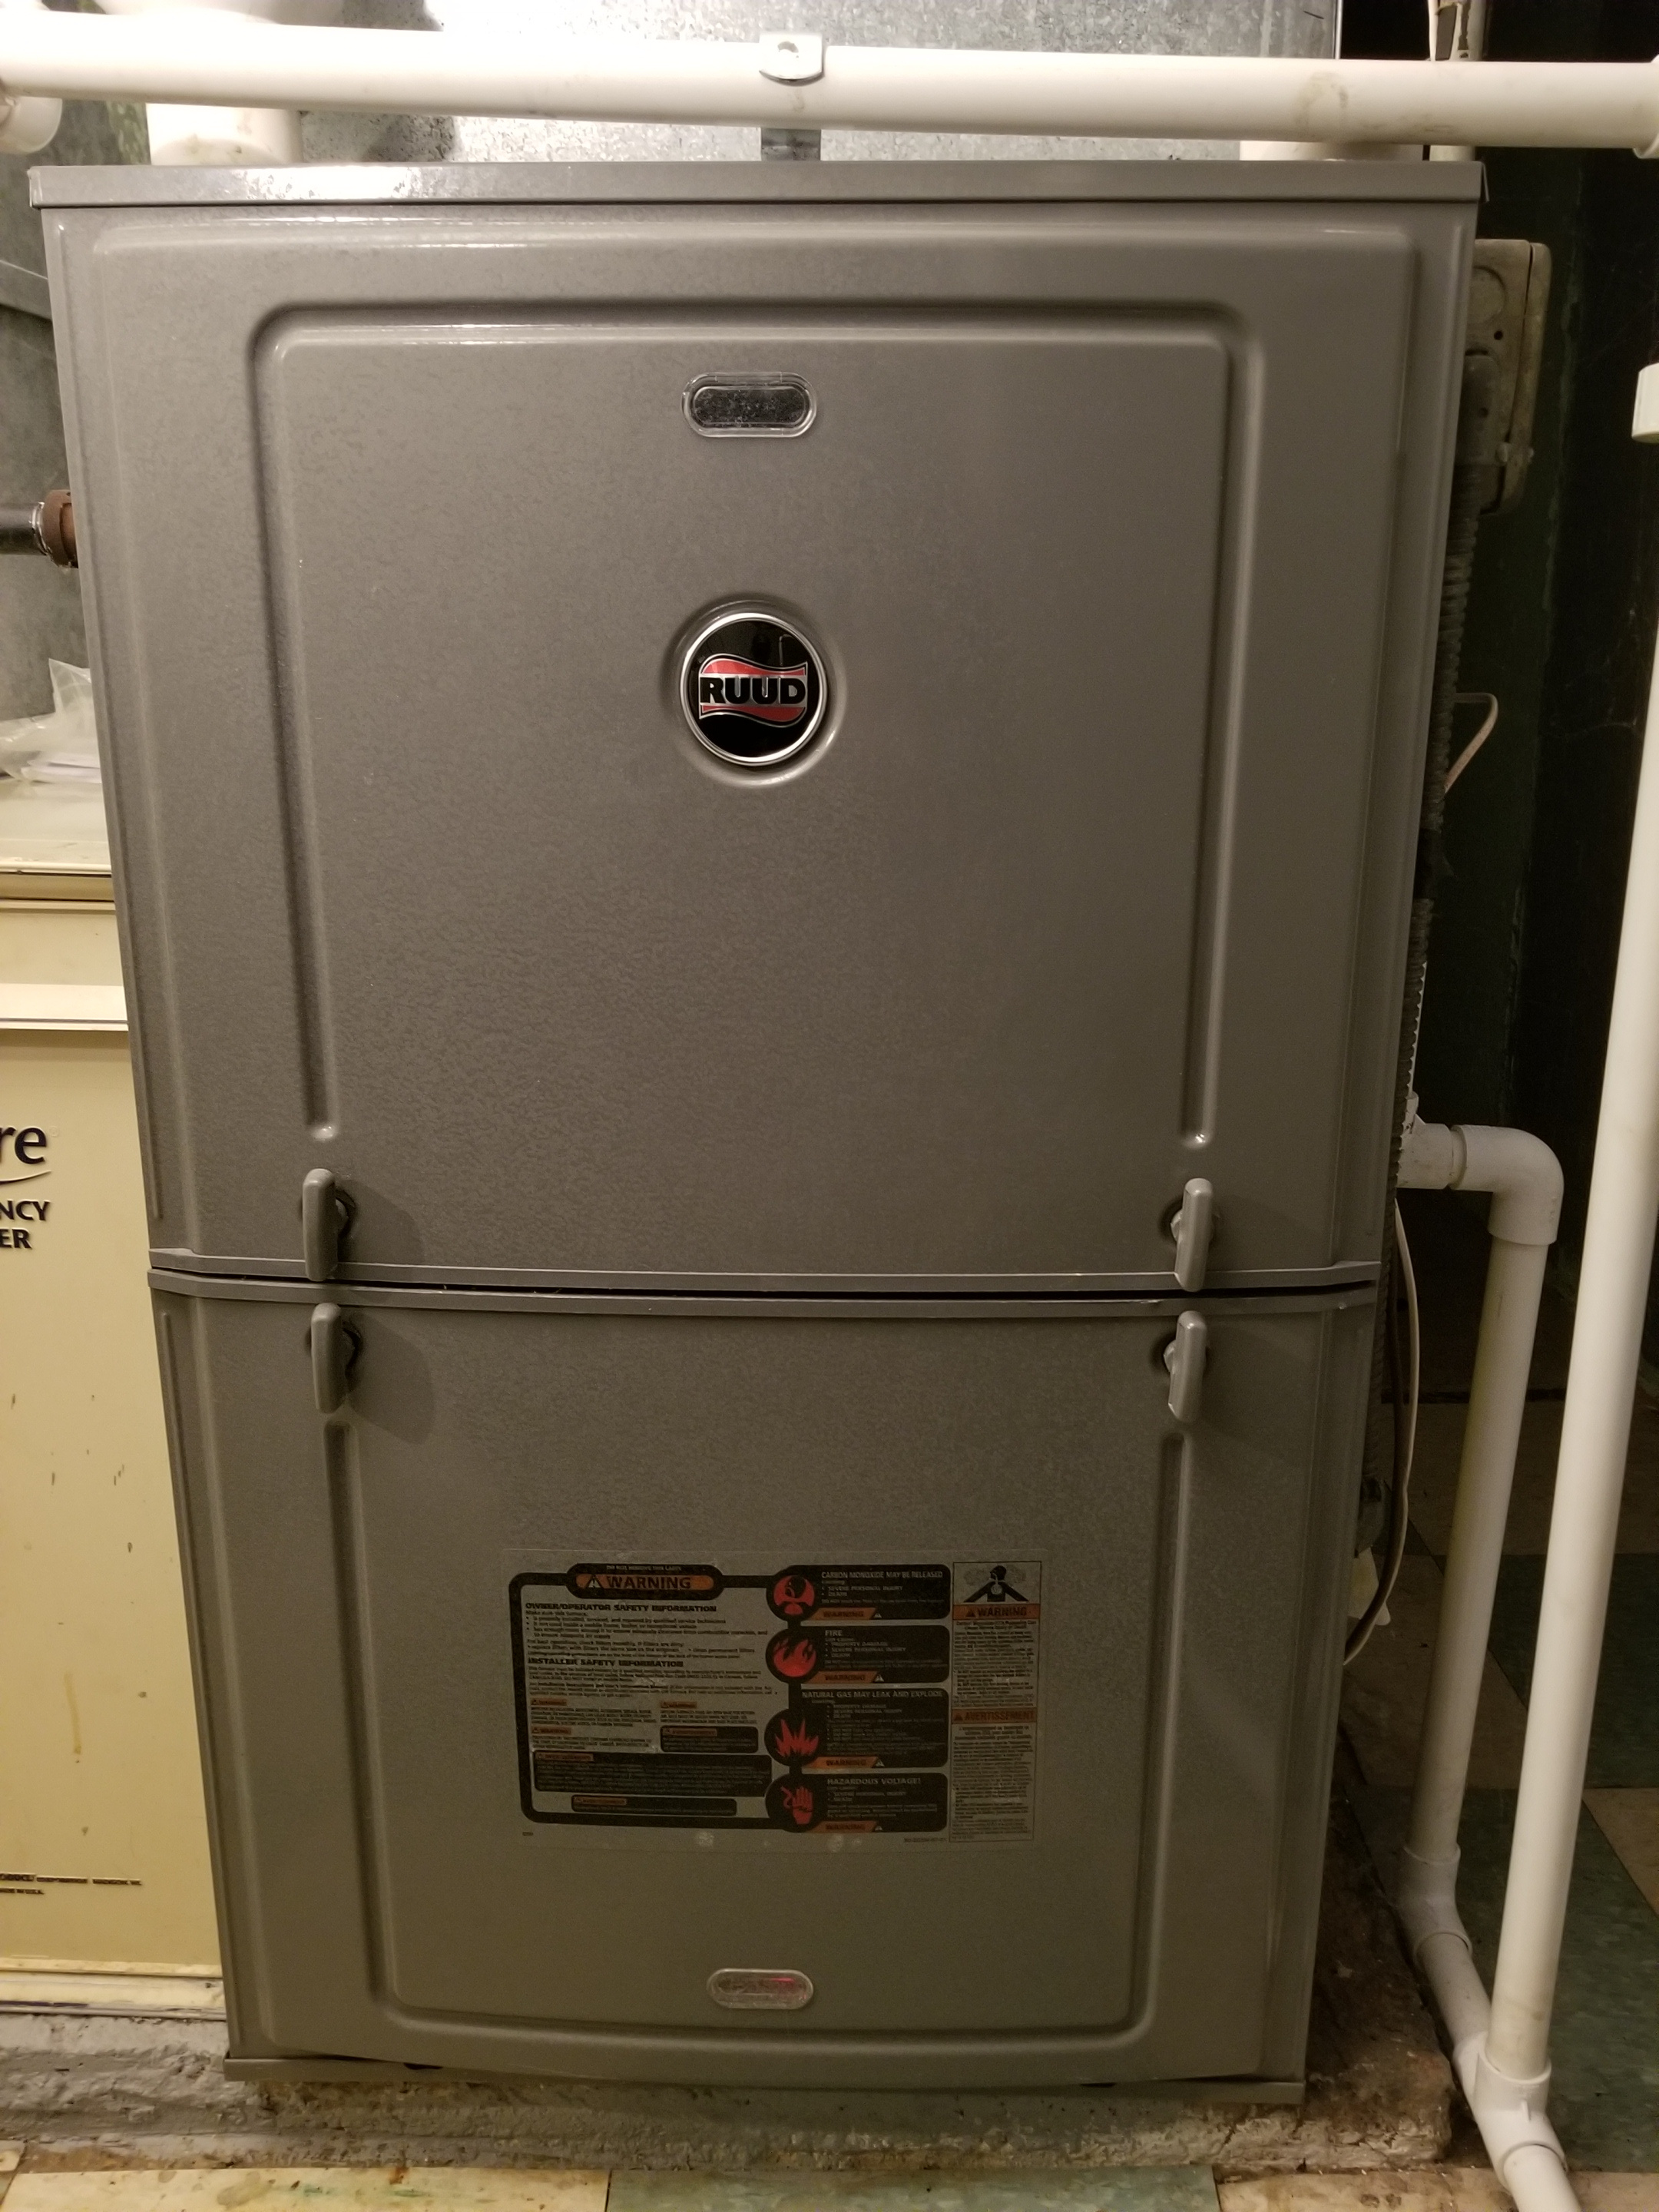 Performed annual maintenance on the Ruud furnace and Honeywell humidifier and made adjustments to improve the overall efficiency and life expectancy of the equipment